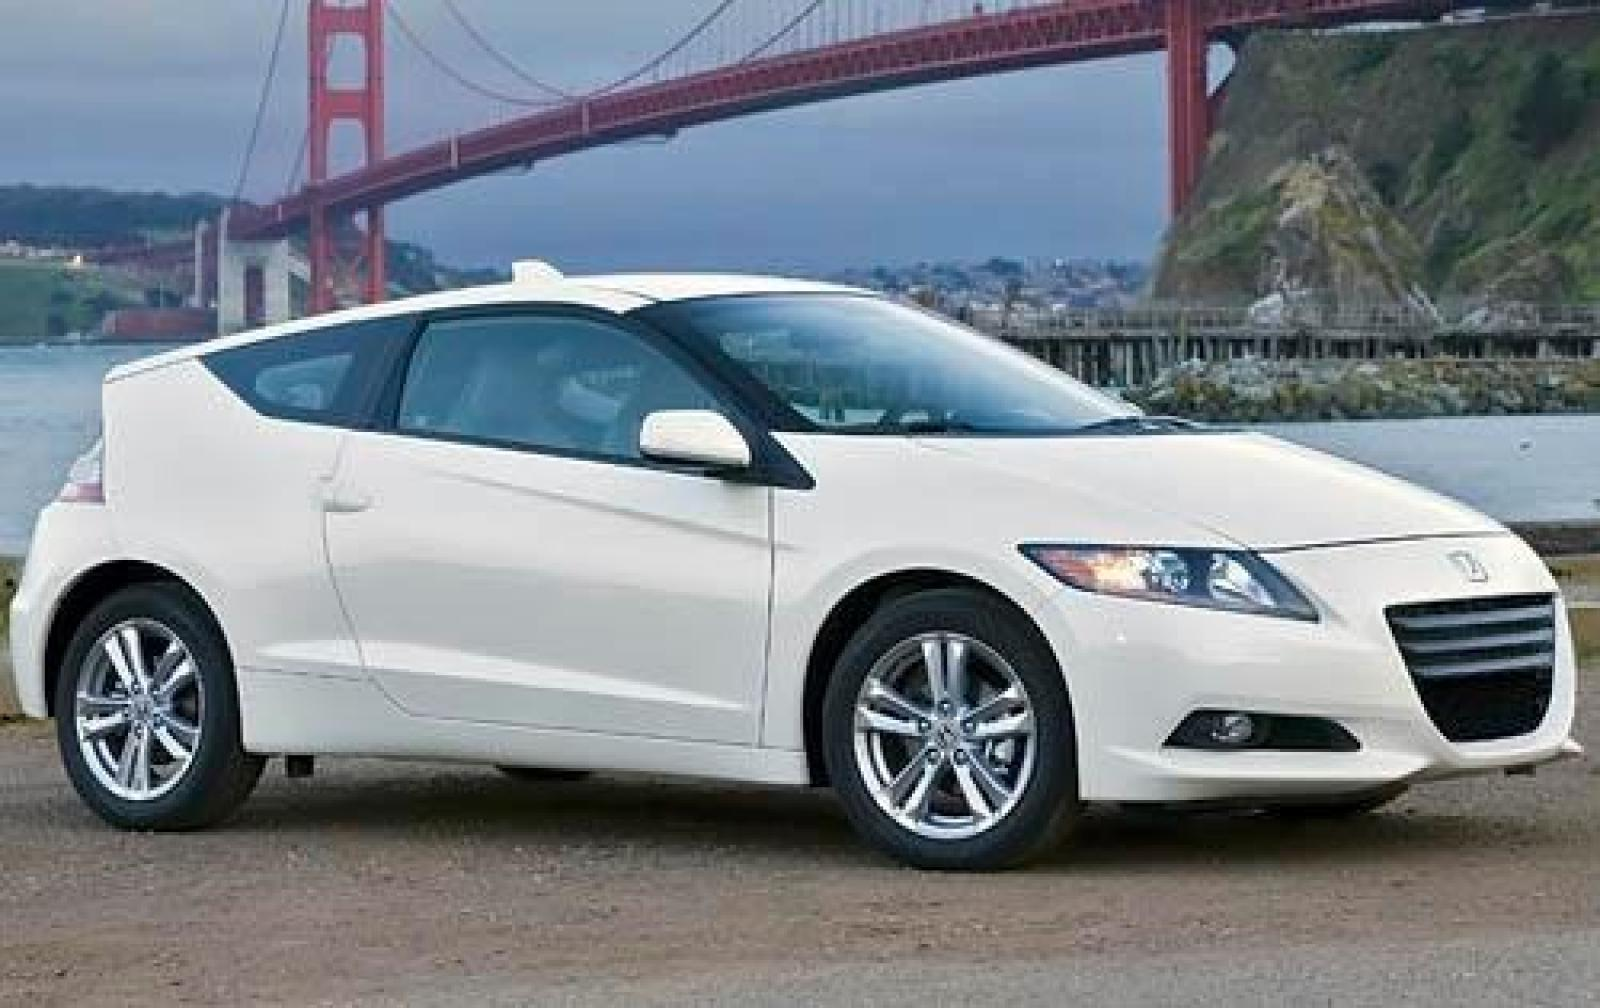 2012 honda cr z information and photos zombiedrive. Black Bedroom Furniture Sets. Home Design Ideas